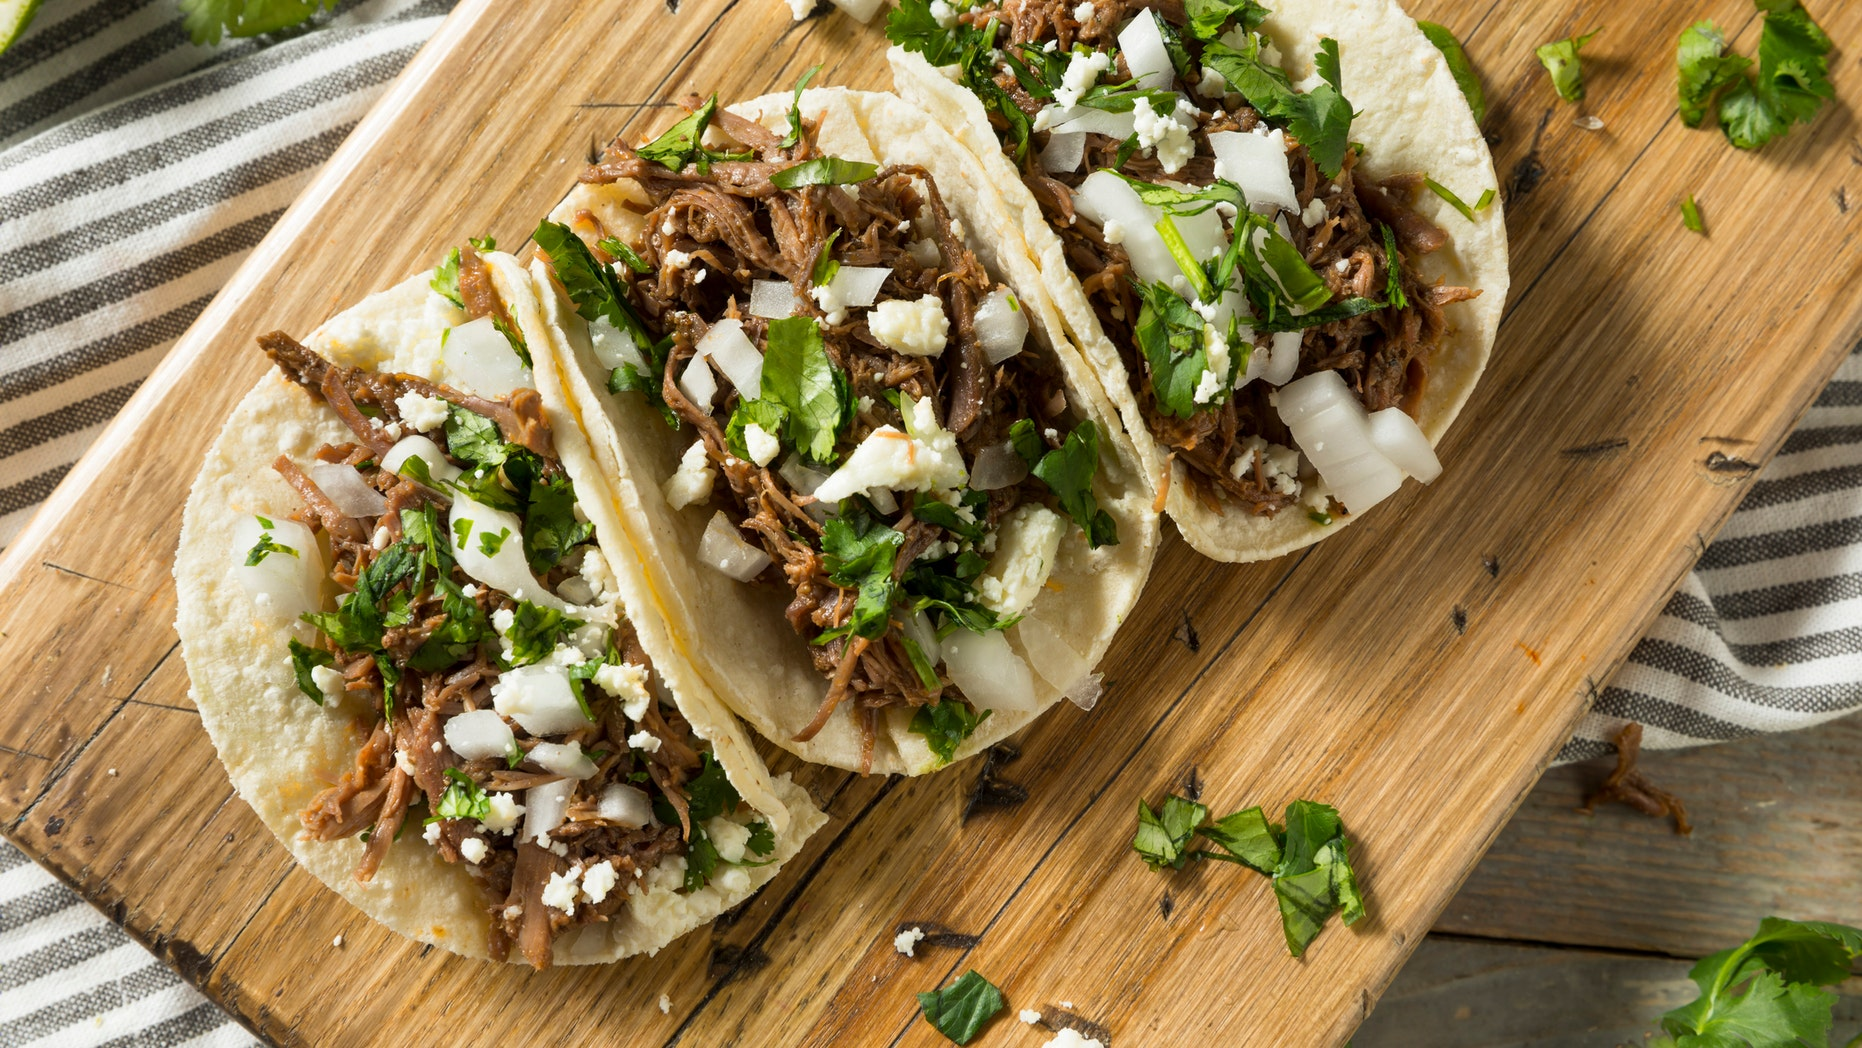 Texas taco truck's business booms after owner's daughter asks for support on Twitter